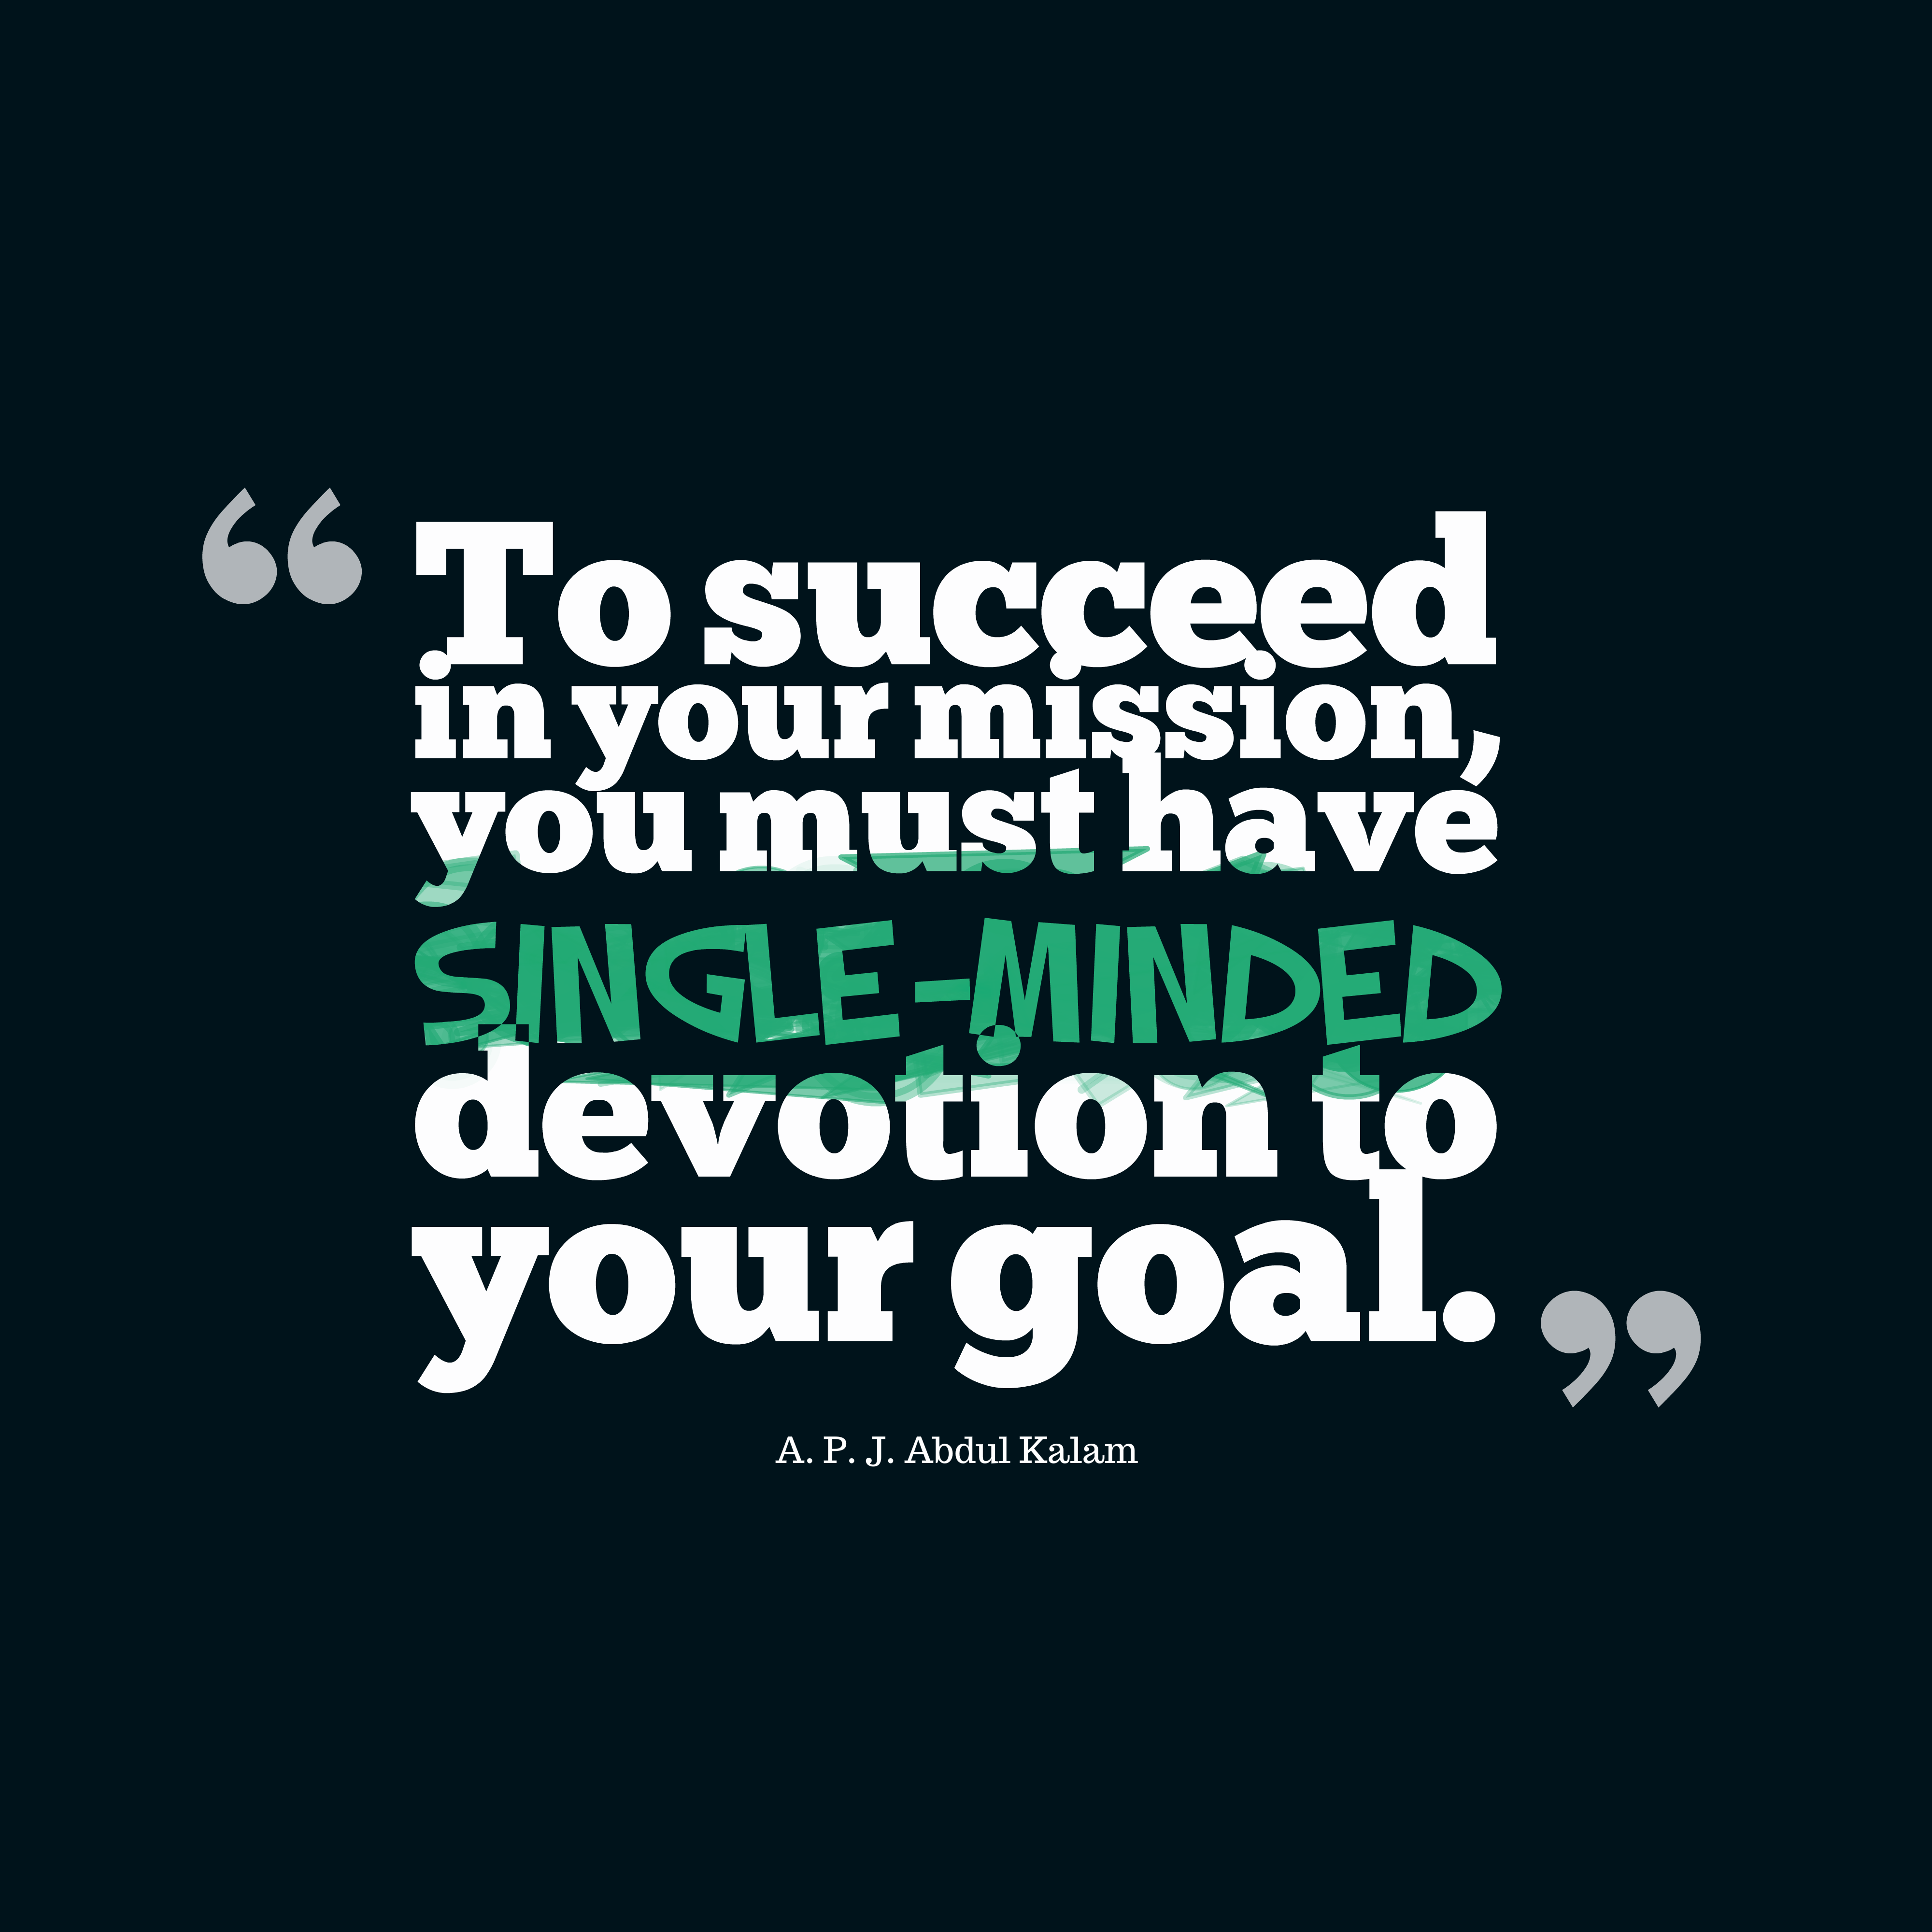 Quotes image of To succeed in your mission, you must have single-minded devotion to your goal.